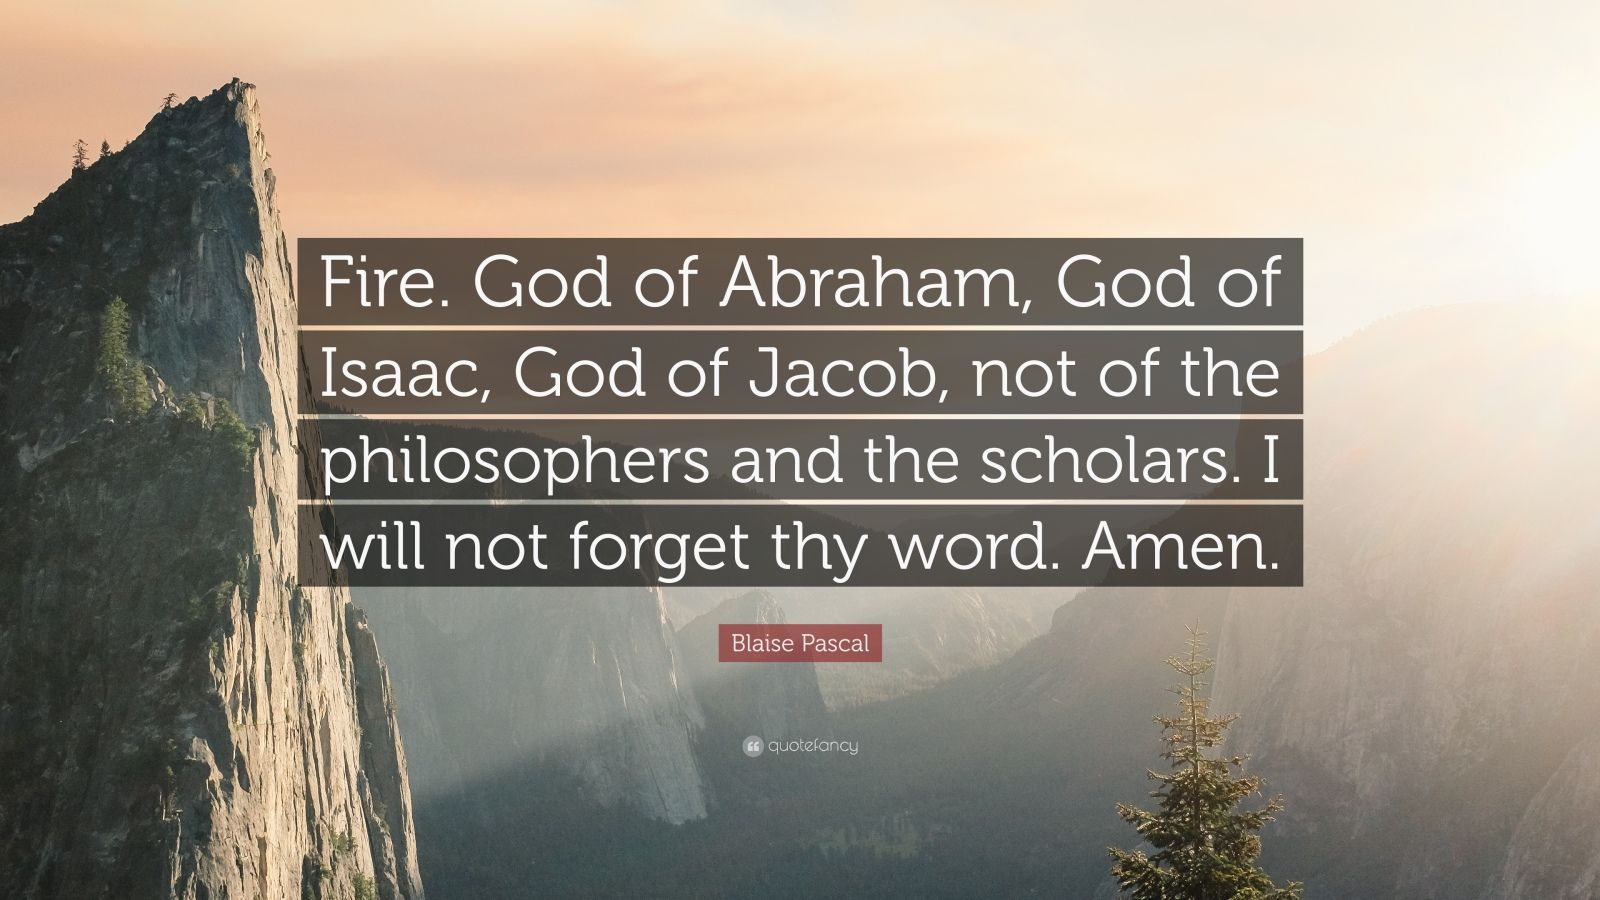 """Blaise Pascal Quote: """"Fire. God of Abraham, God of Isaac, God of Jacob, not of the philosophers and the scholars. I will not forget thy word. Amen."""""""